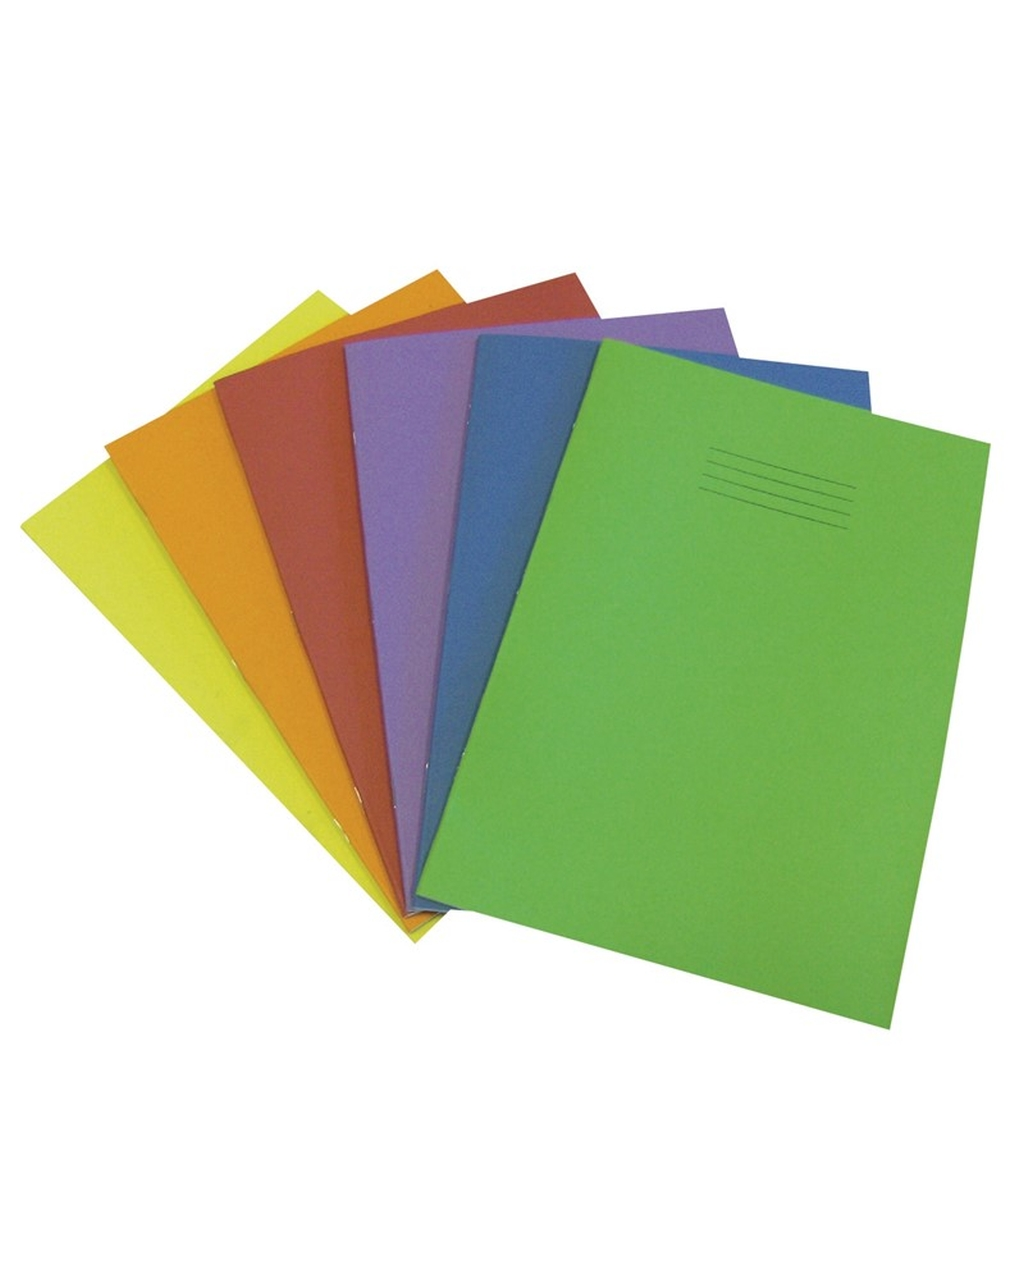 Exercise Book A4 (297 x 210mm) Light Green Cover 8mm Ruled / Plain Alternate Pages 64 Pages